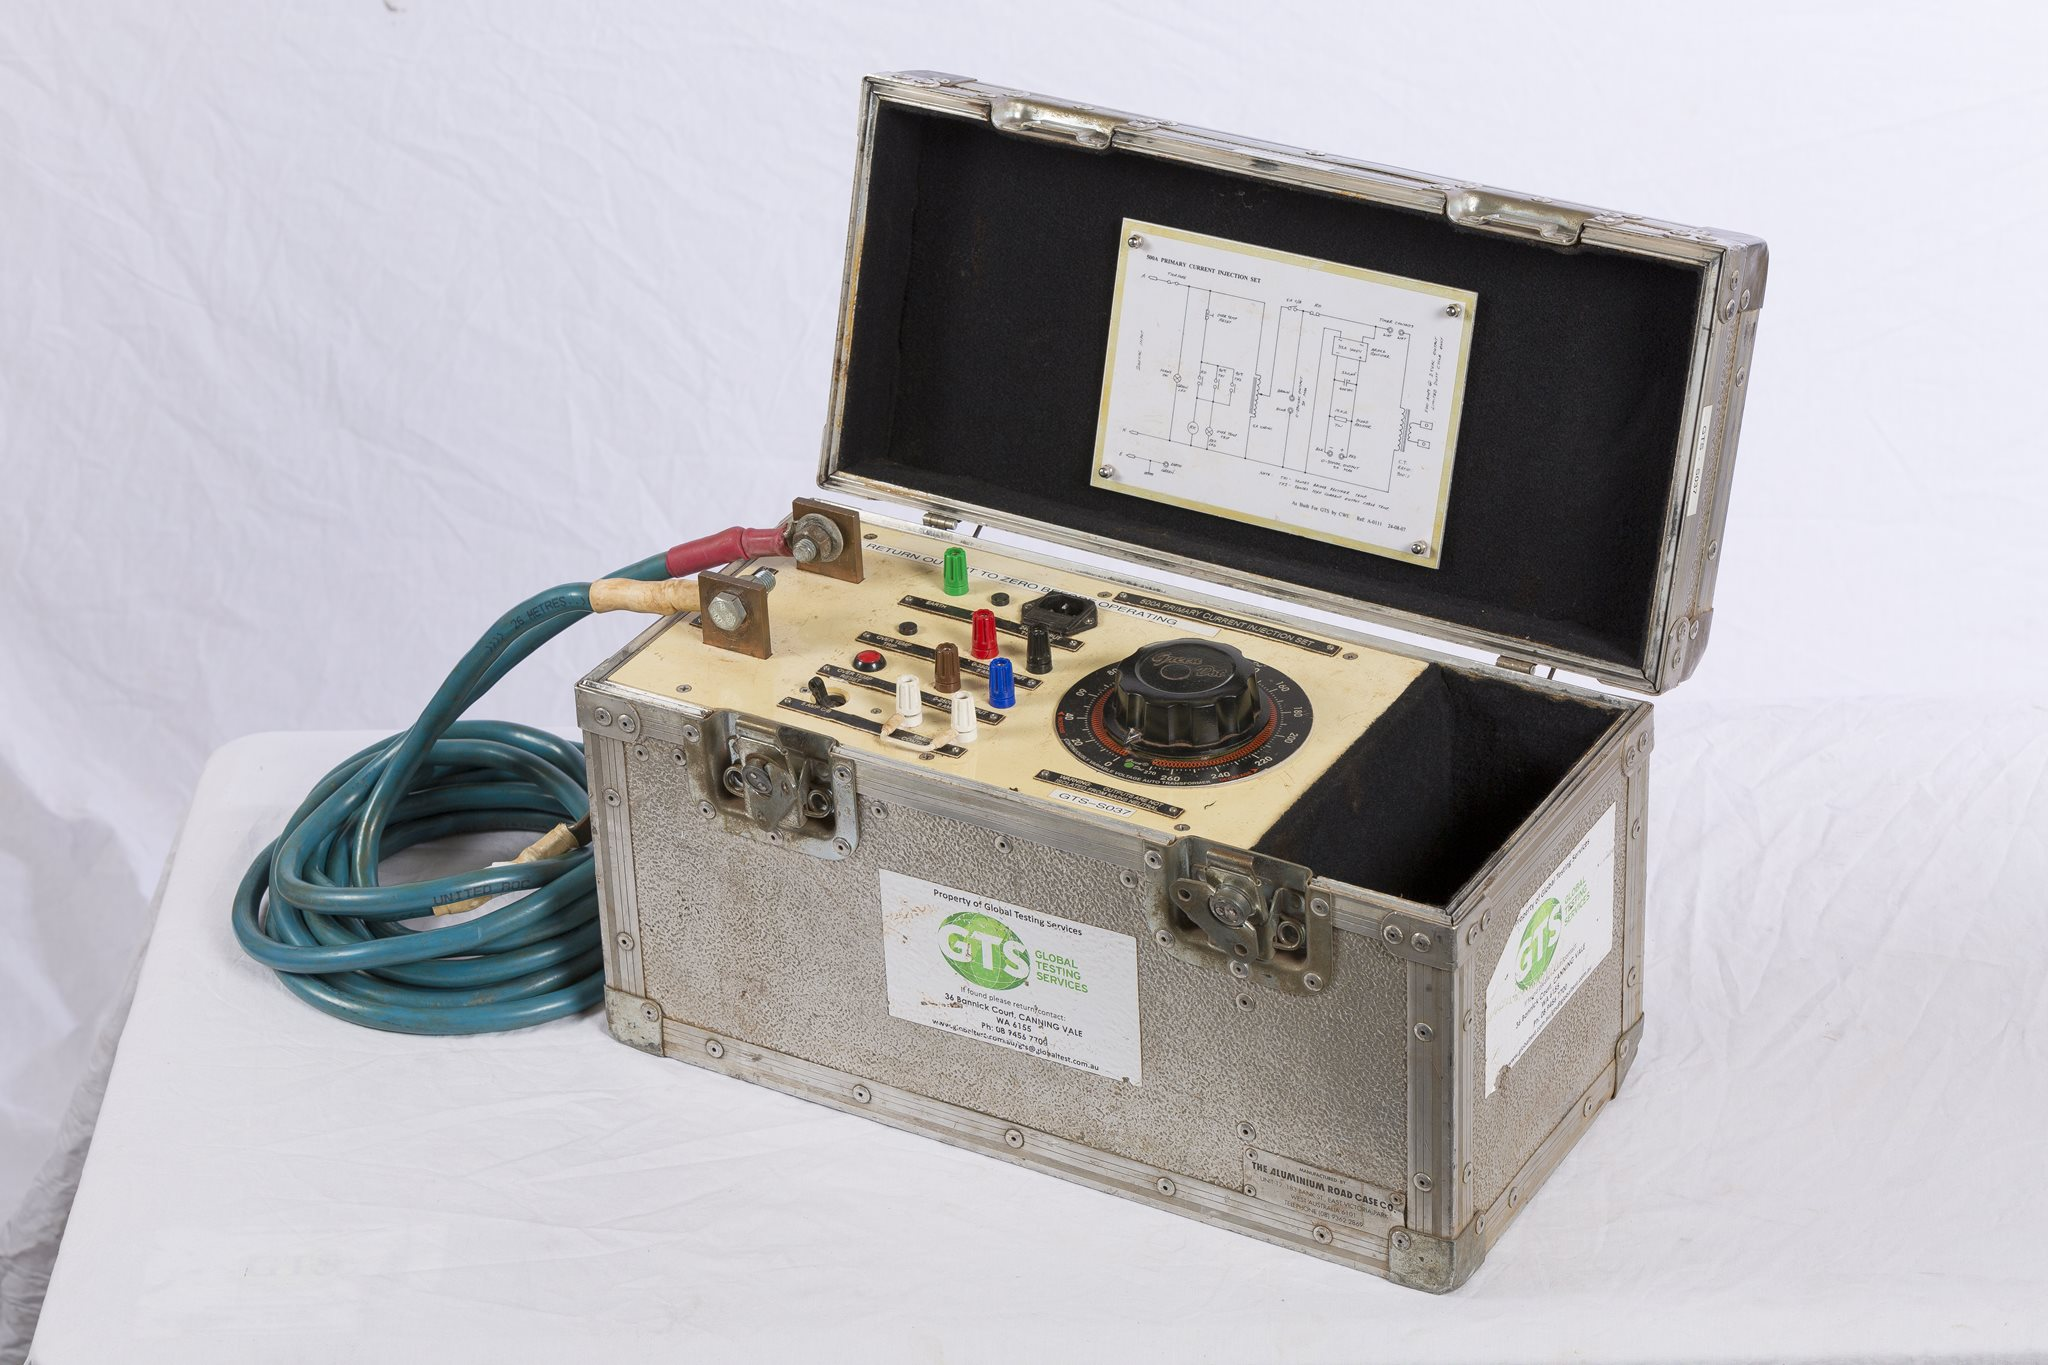 Electrical Testing Equipment Hire - Global Testing Services